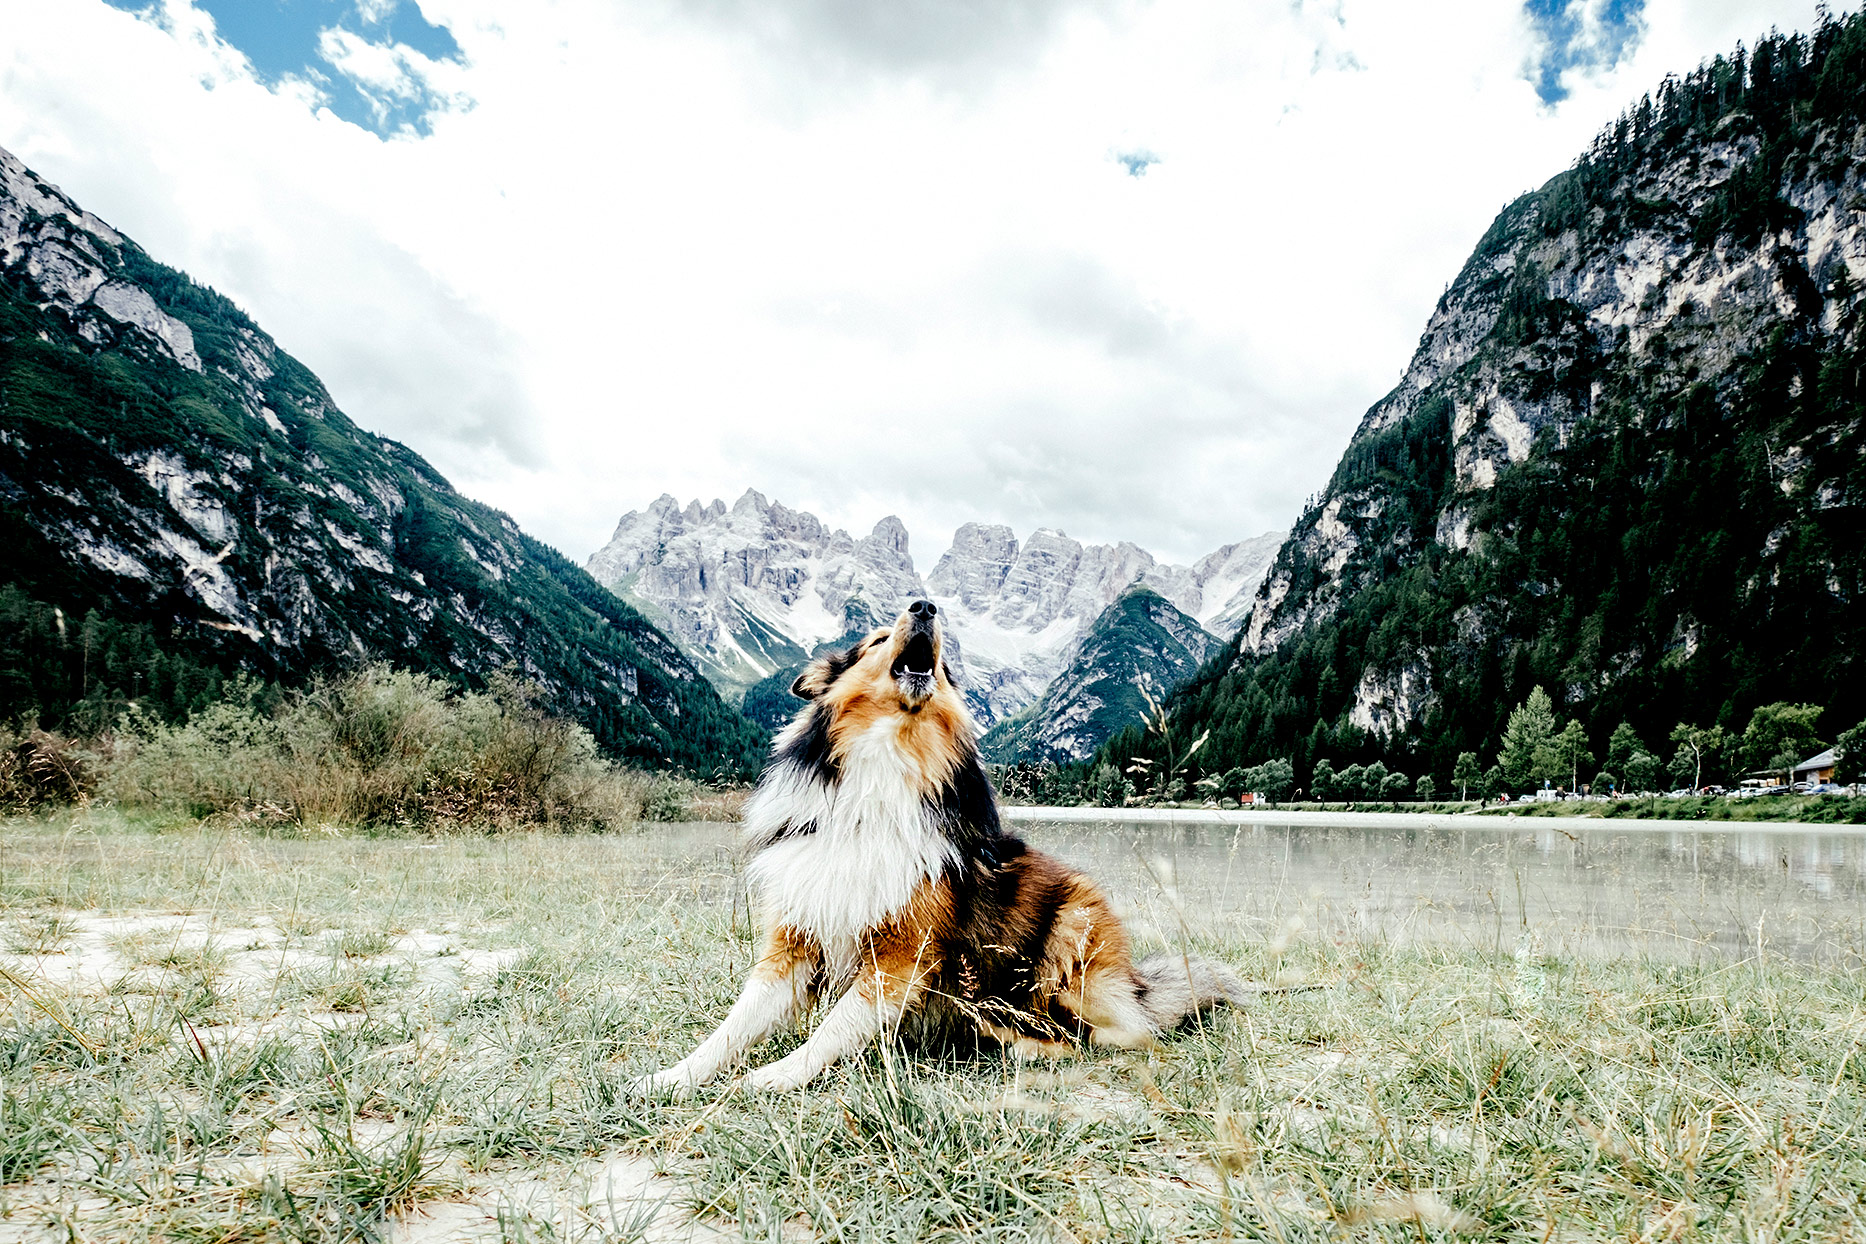 Border Collie howling in front of mountains